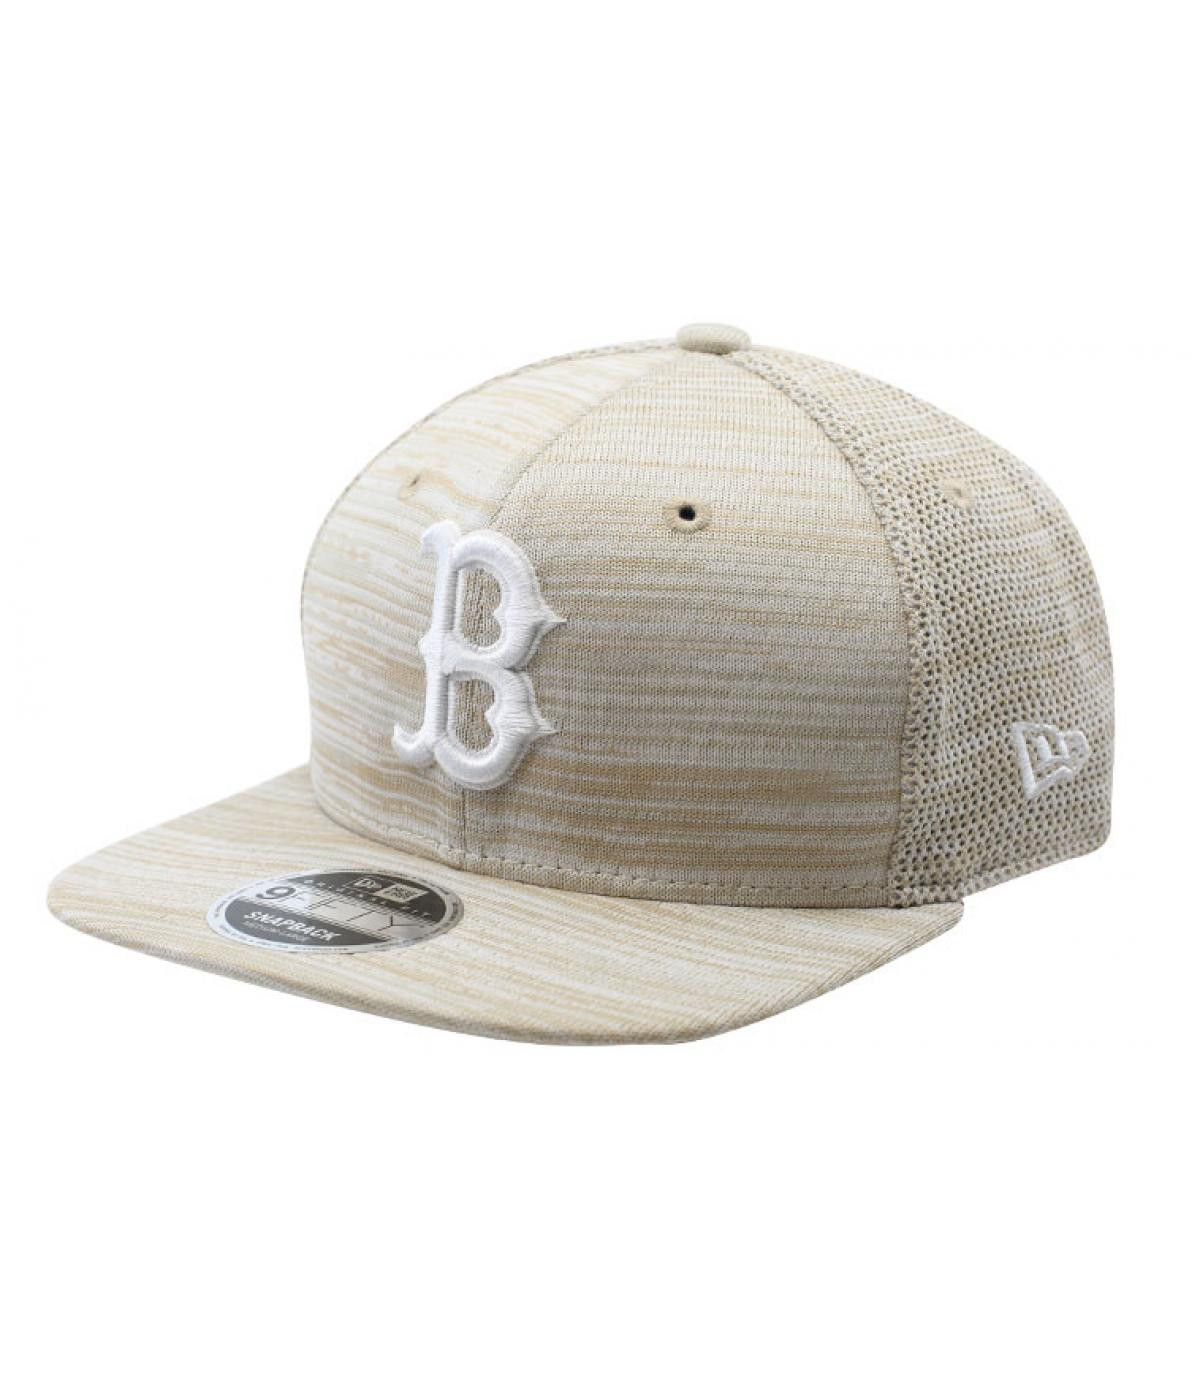 Détails Snapback Engineered Fit 9Fifty Boston stone white - image 2